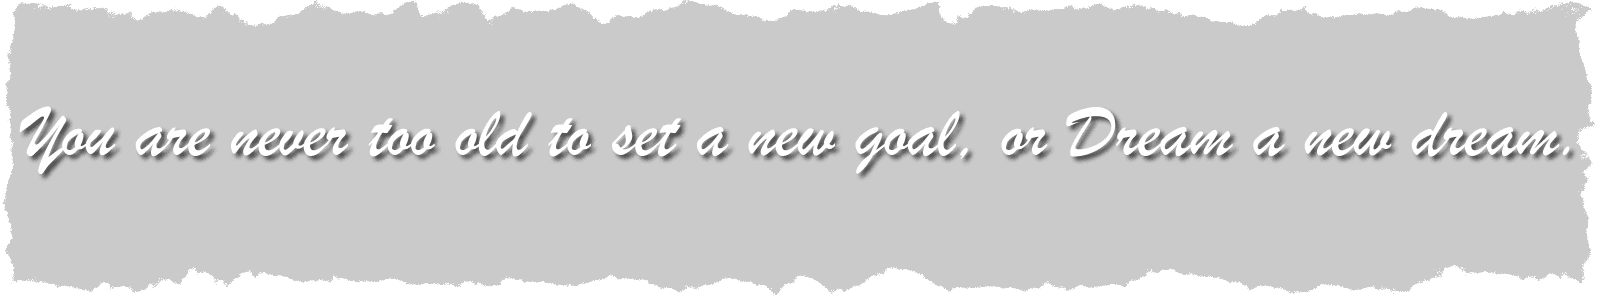 You are never too old to set a new goa, or Dream a new dream quote.